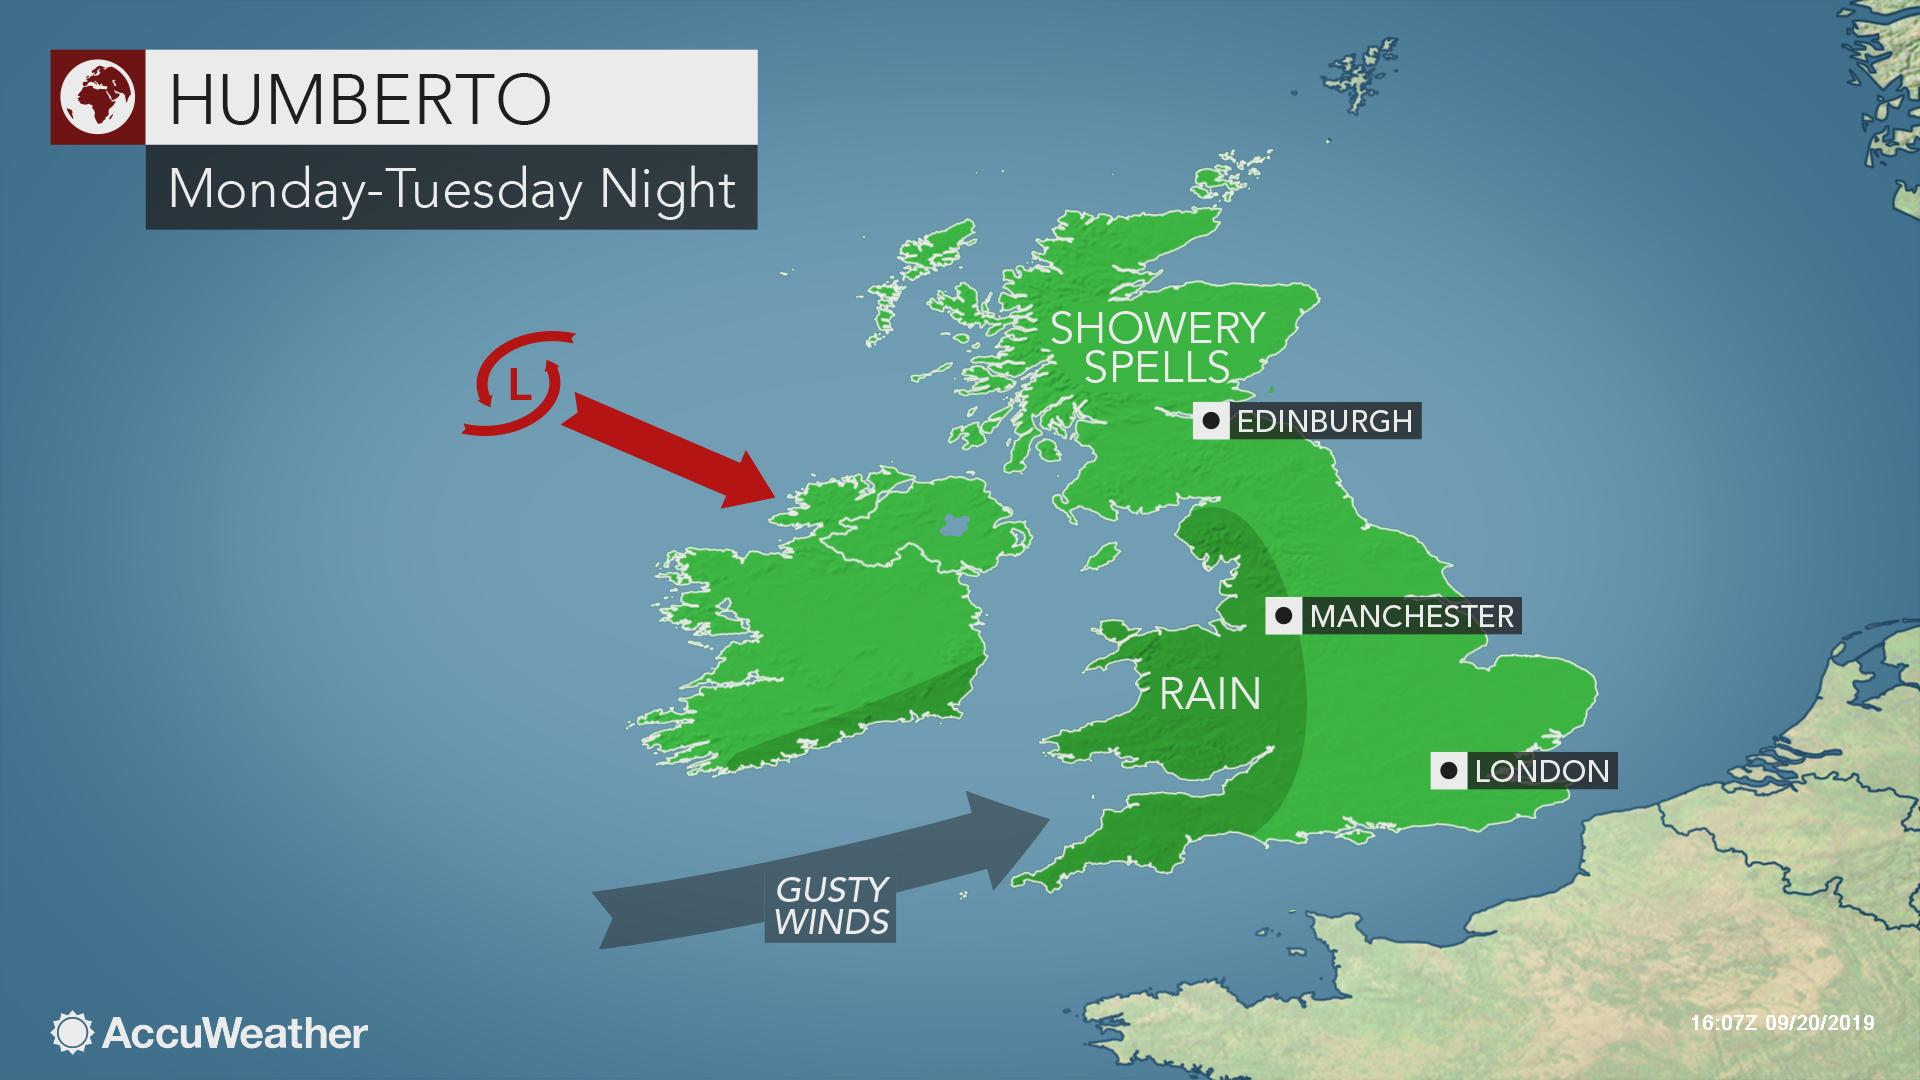 UK braces for Humberto's rain and gusty winds early next week